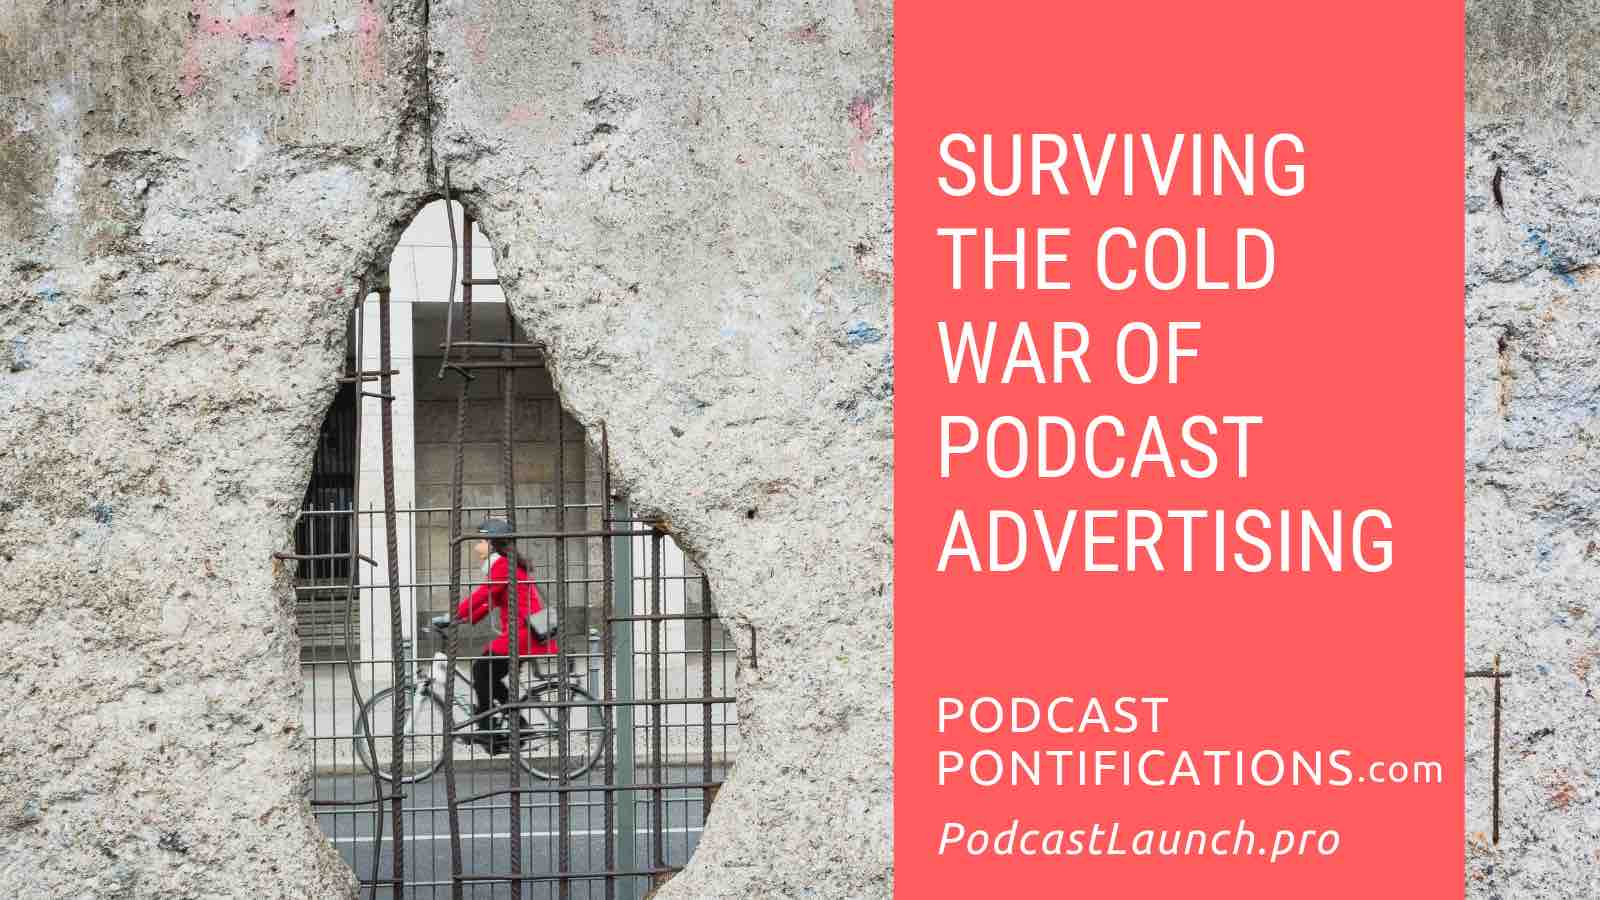 Surviving The Cold War Of Podcast Advertising